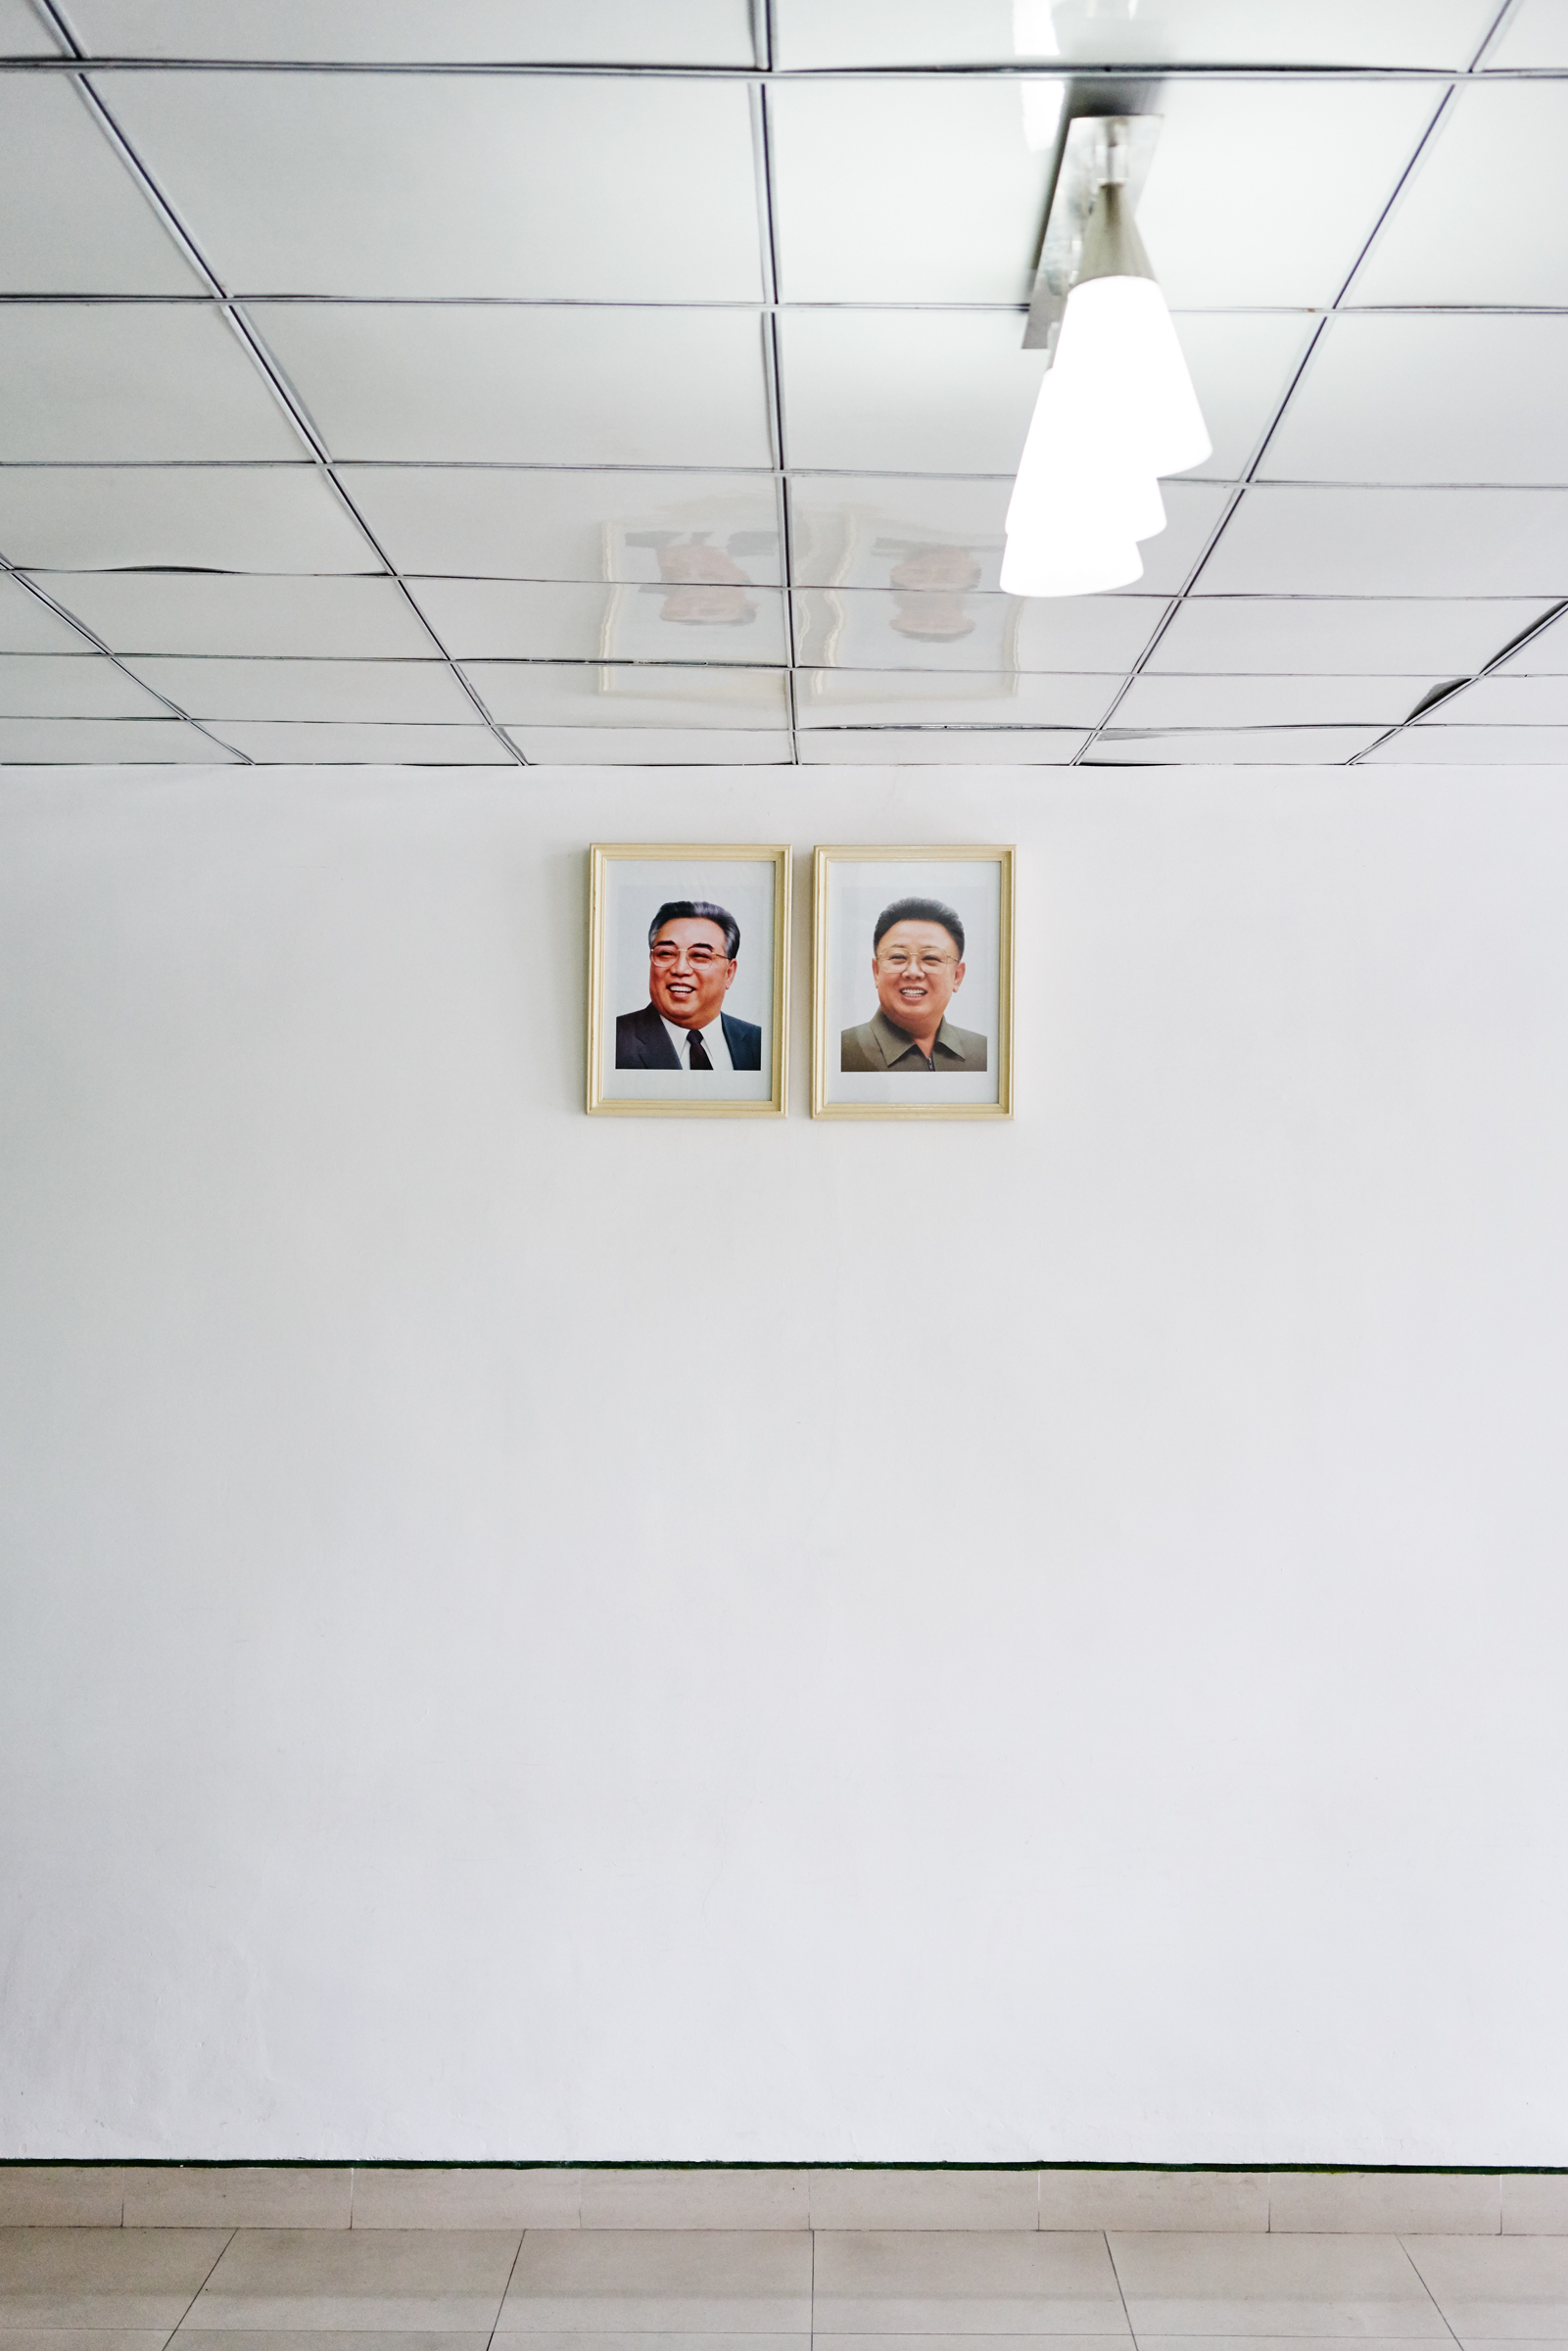 A photo of Kim Il-Sung and Kim Jong-Il hang in empty room Kaesong, NK